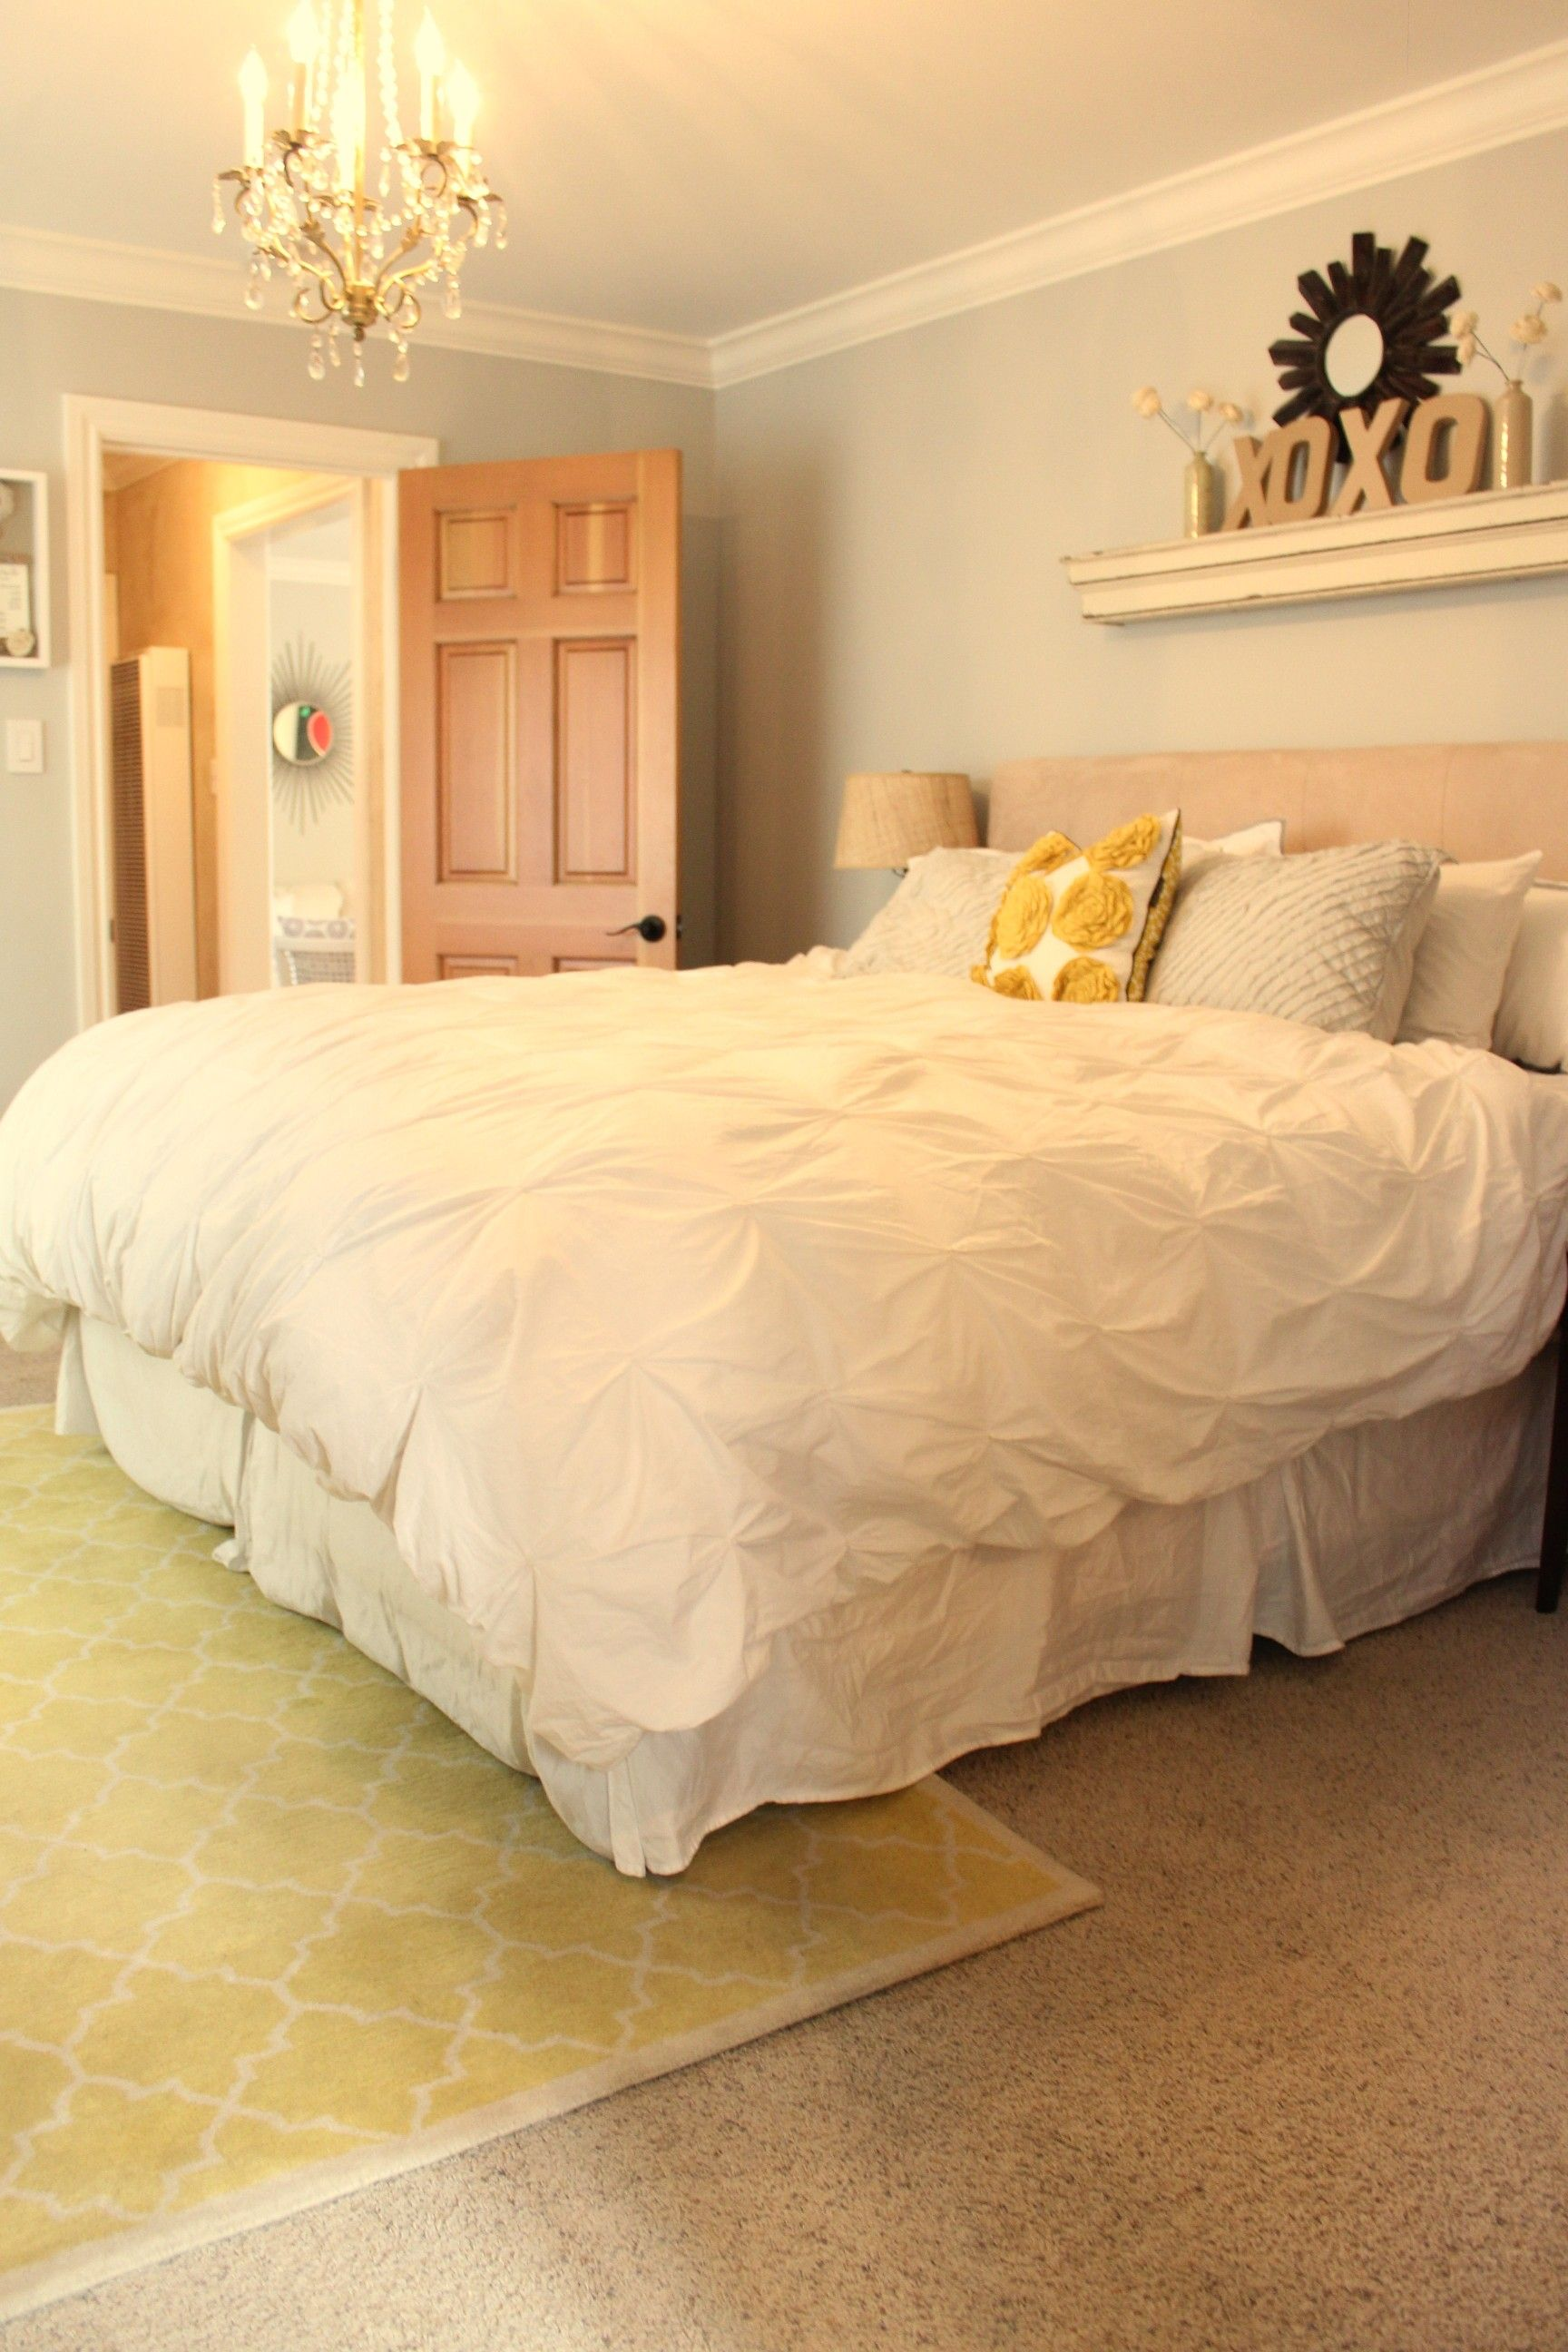 That bedding! Fluffy white bed is my Dream! And this one is pretty ...